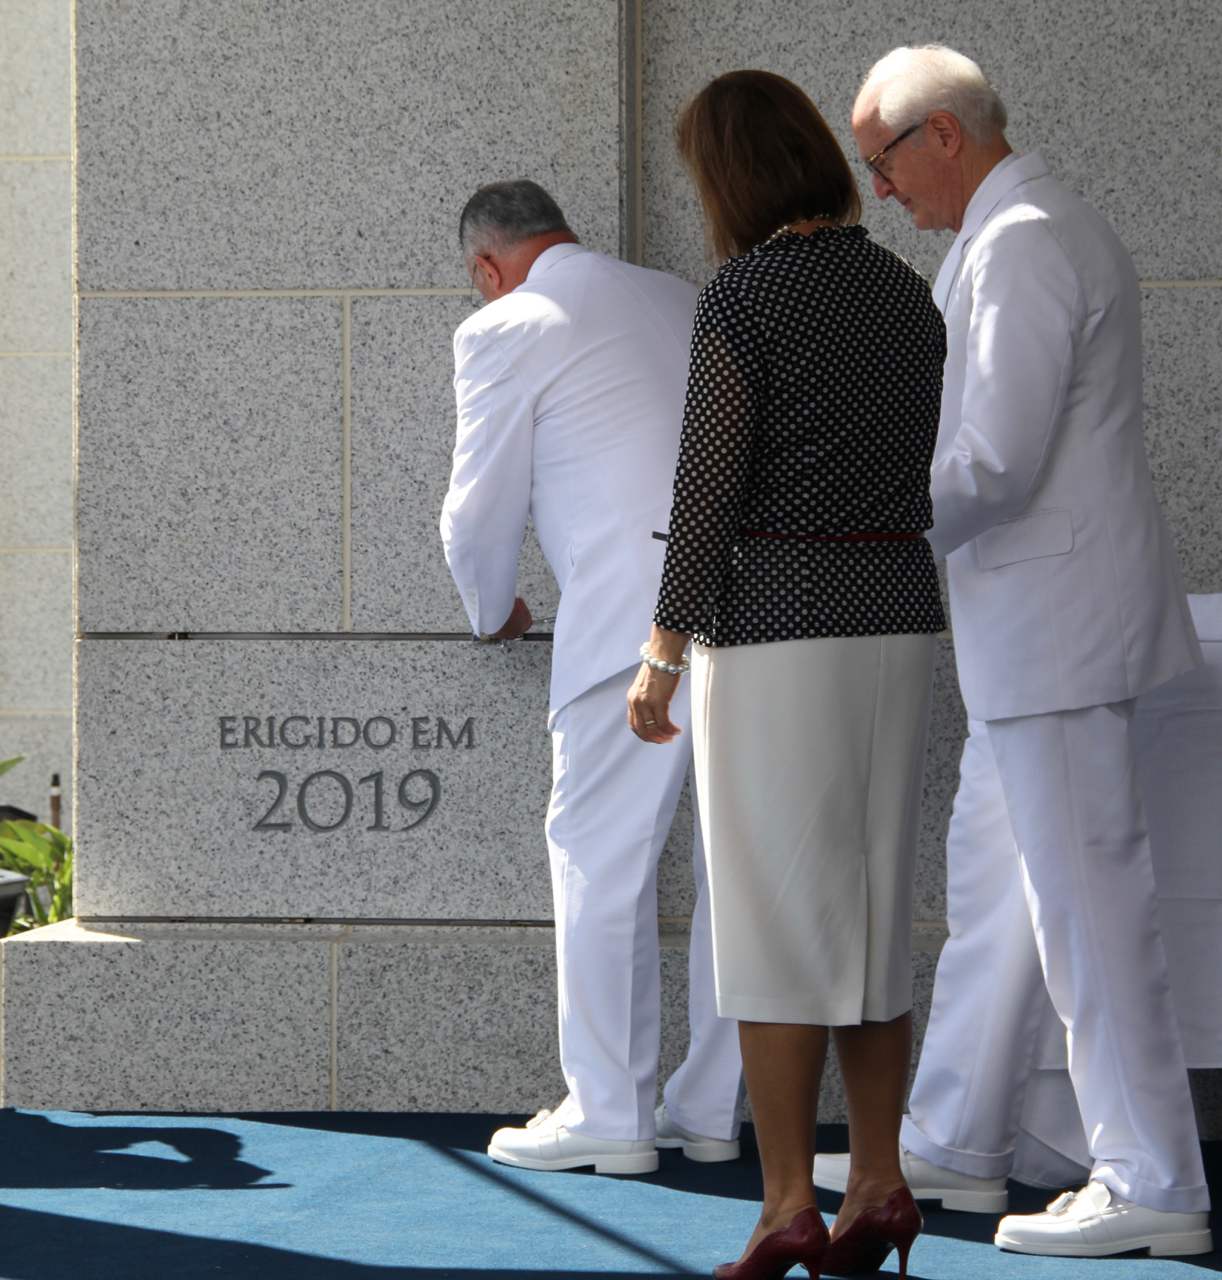 Elder Ulisses Soares of the Quorum of the Twelve Apostles places mortar around the cornerstone of the Fortaleza Brazil Temple on Sunday, June 2, 2019. Sister Rosana Soares, and Elder Larry Y. Wilson, a General Authority Seventy and executive director of the Temple Department, watch.